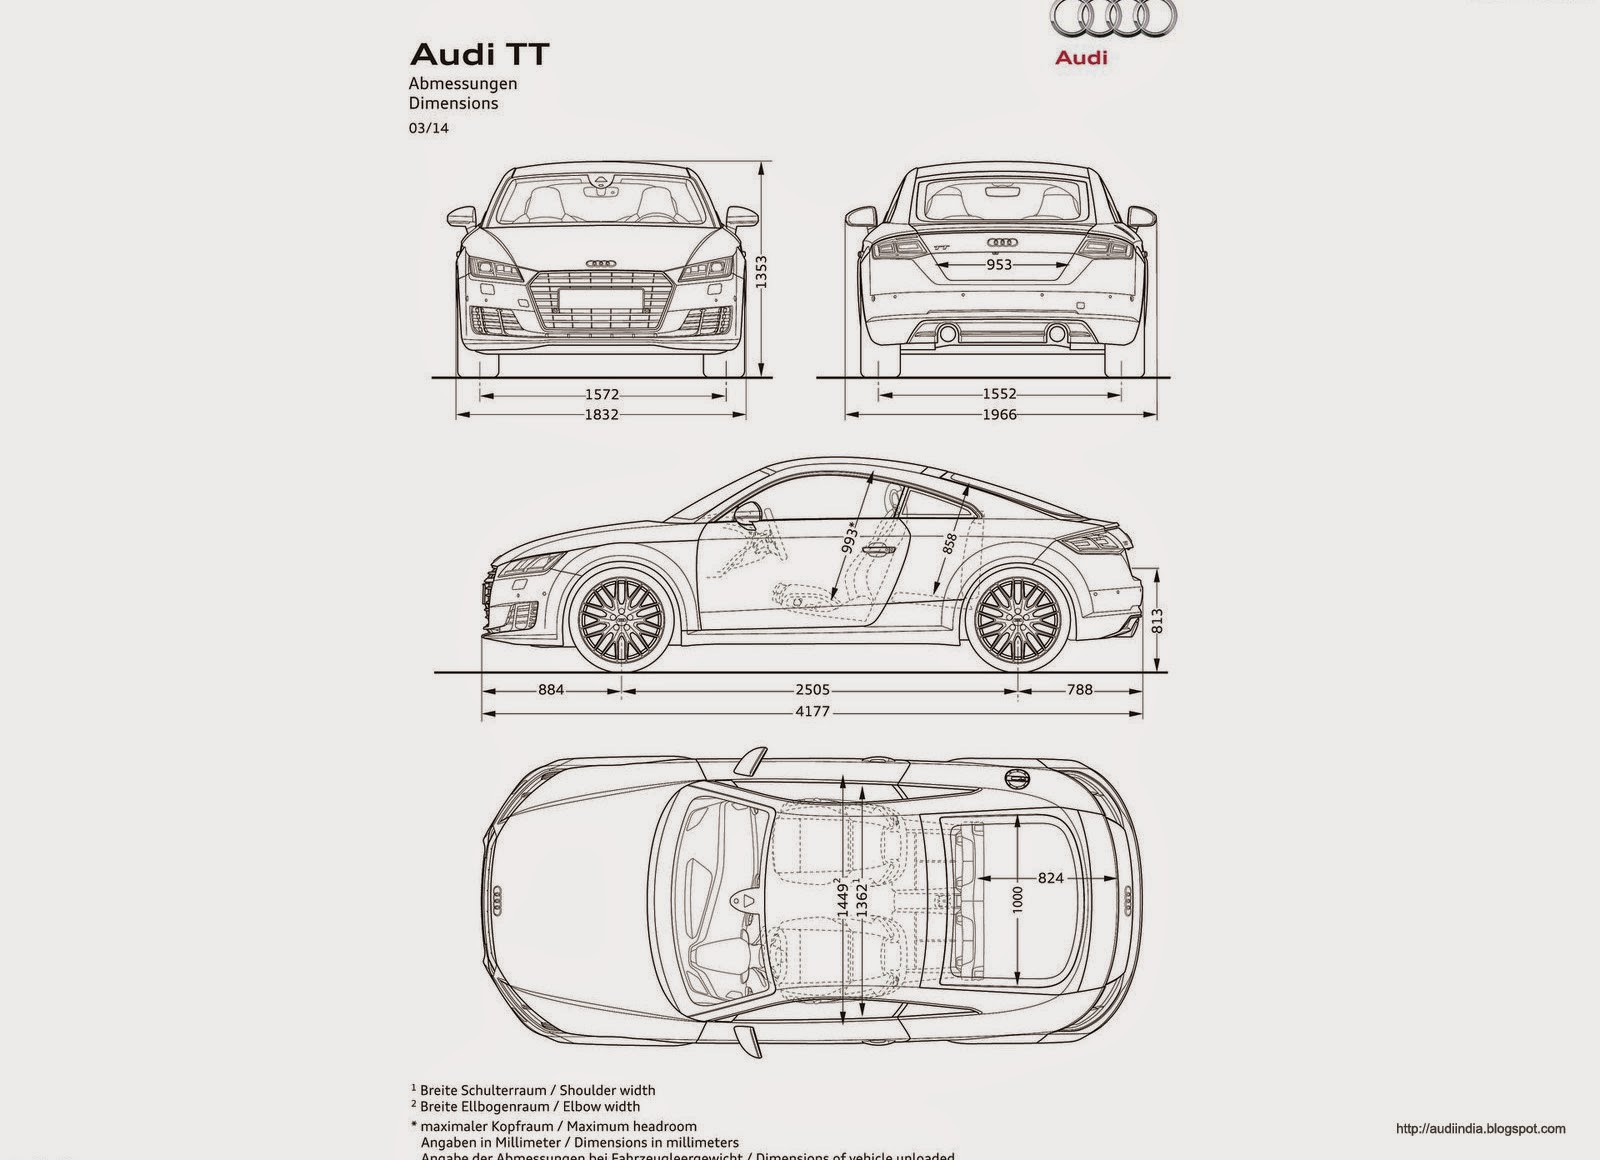 The World of Audi: TT